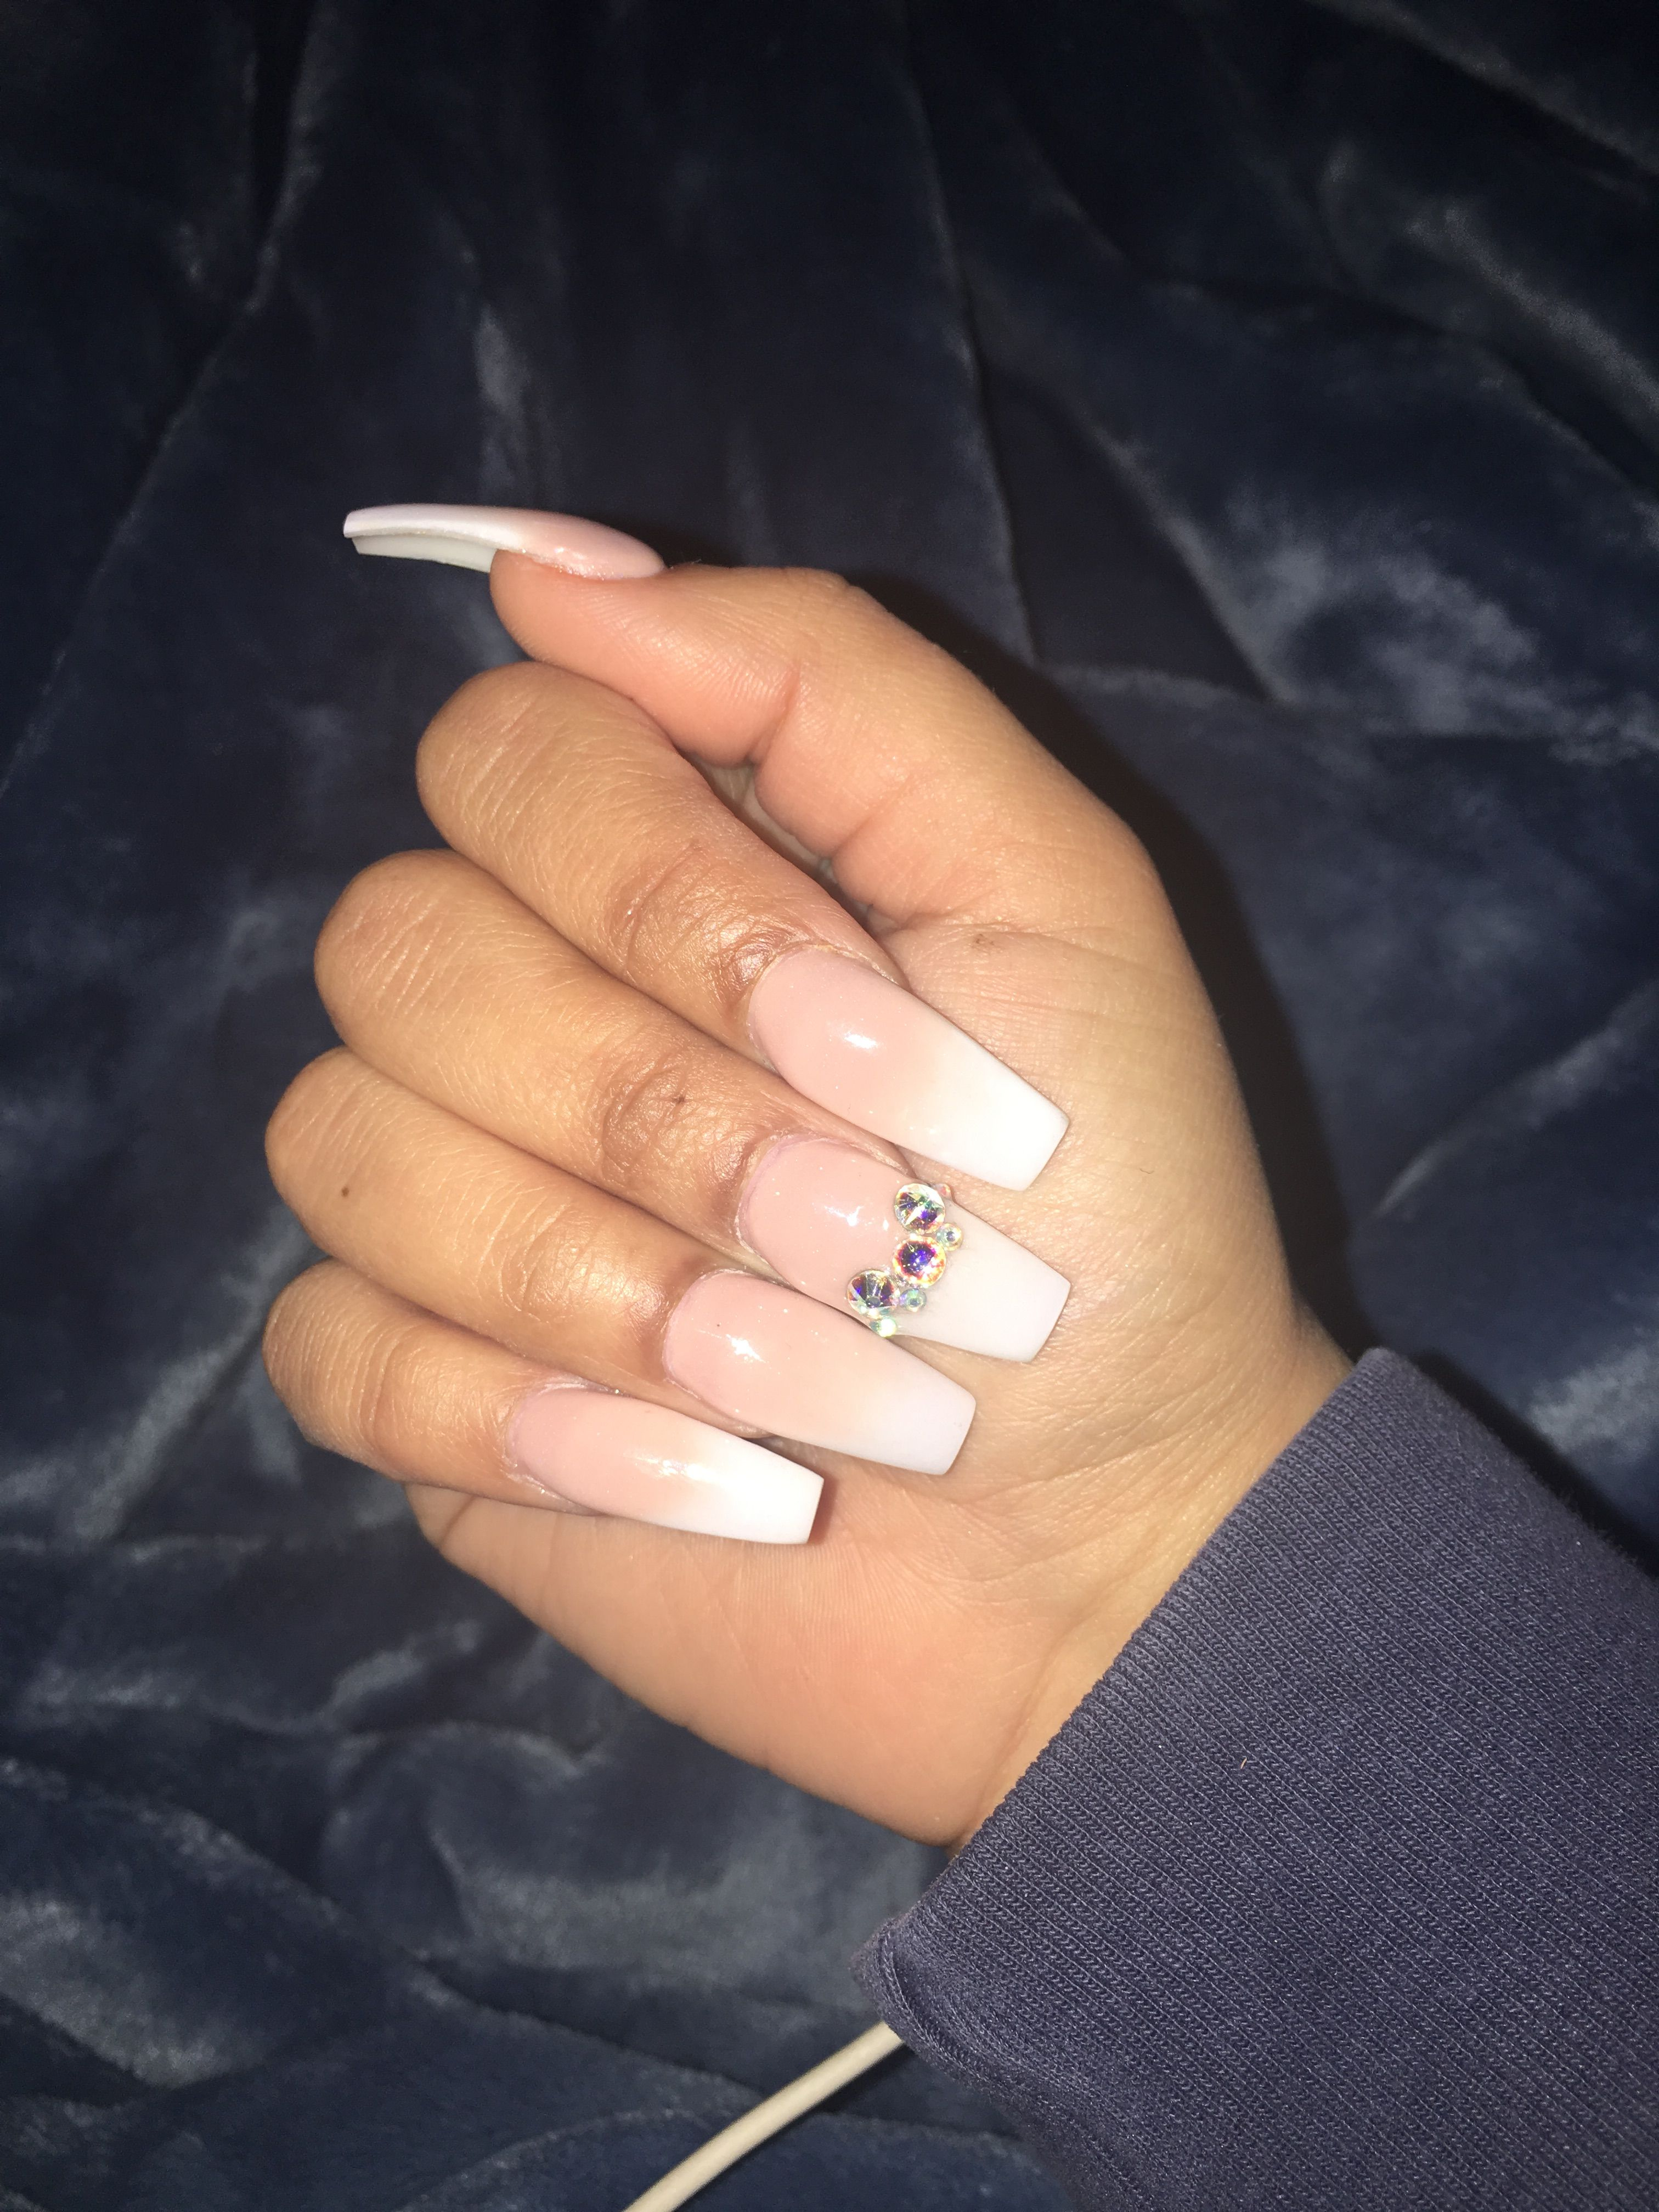 Pin by brenda chavez on nails pinterest